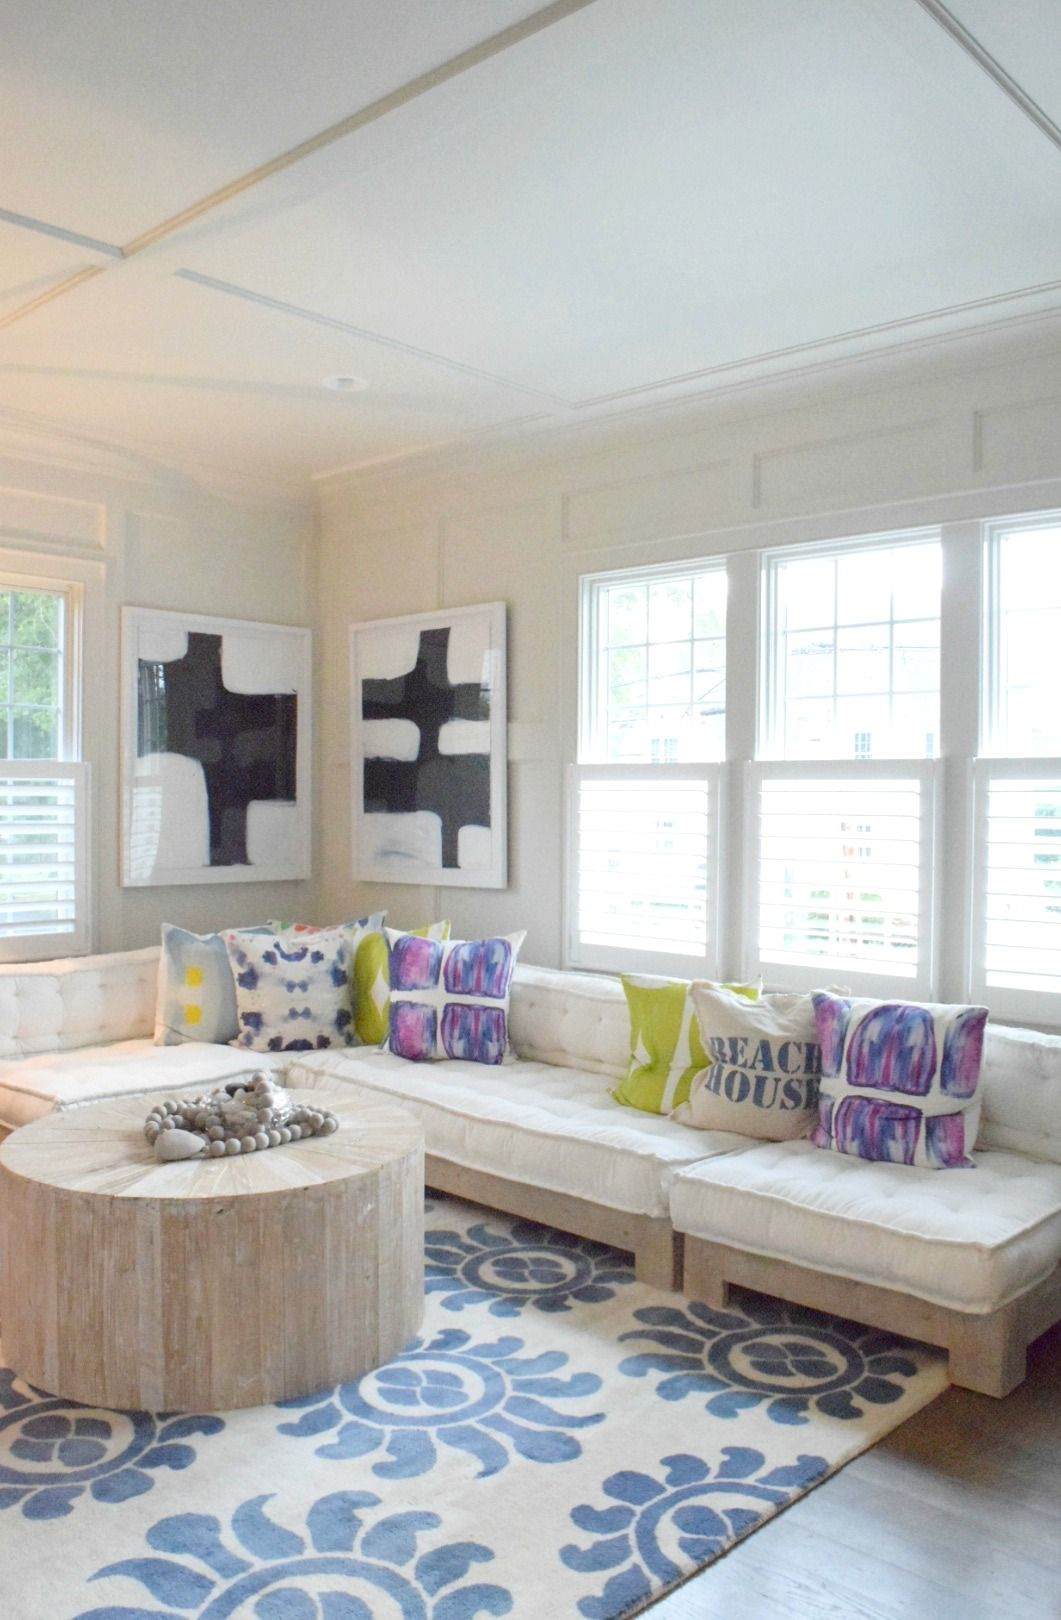 Coastal Living Eclectic Beach House Tour | Coastal, Living rooms and ...